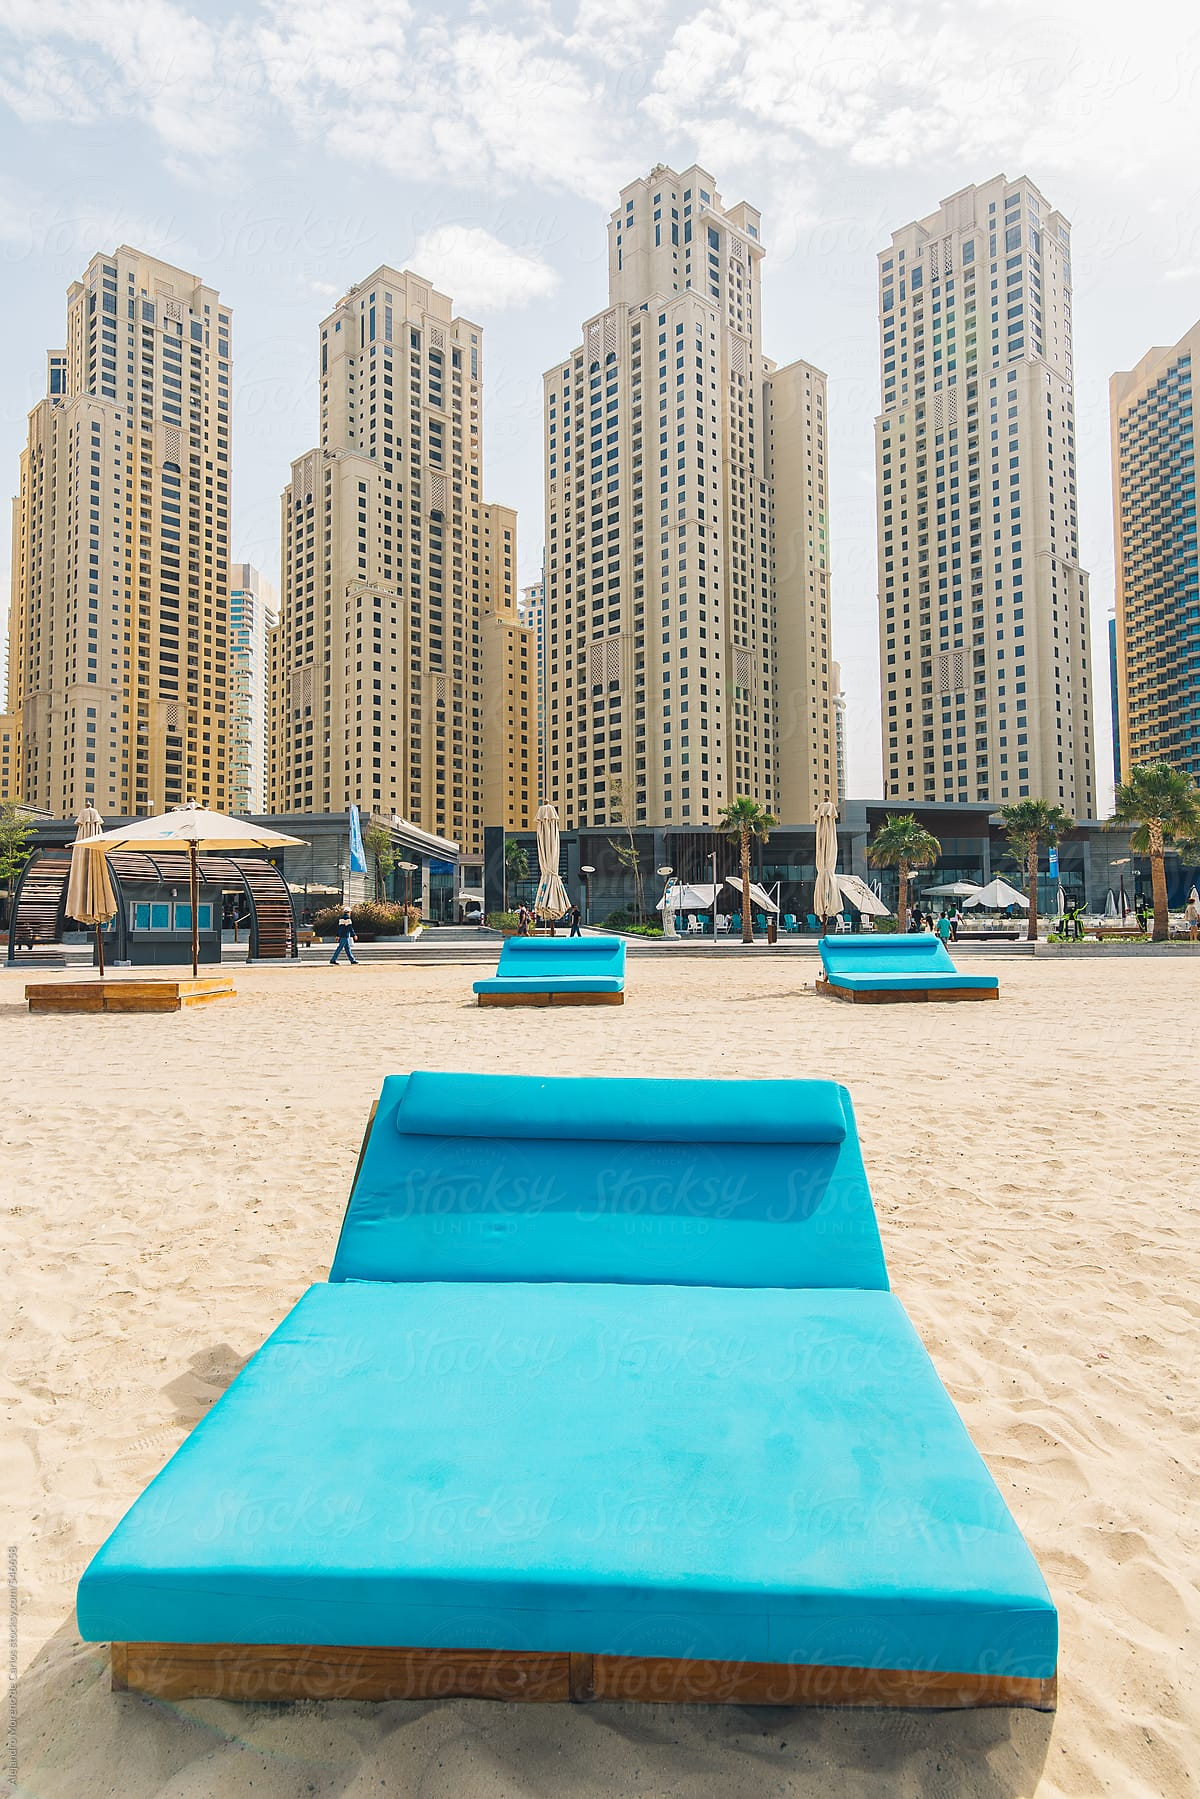 Blue Sunbed On The Beach And City Buildings On The Background Marina Beach Dubai United Arab Emirates By Alejandro Moreno De Carlos Stocksy United